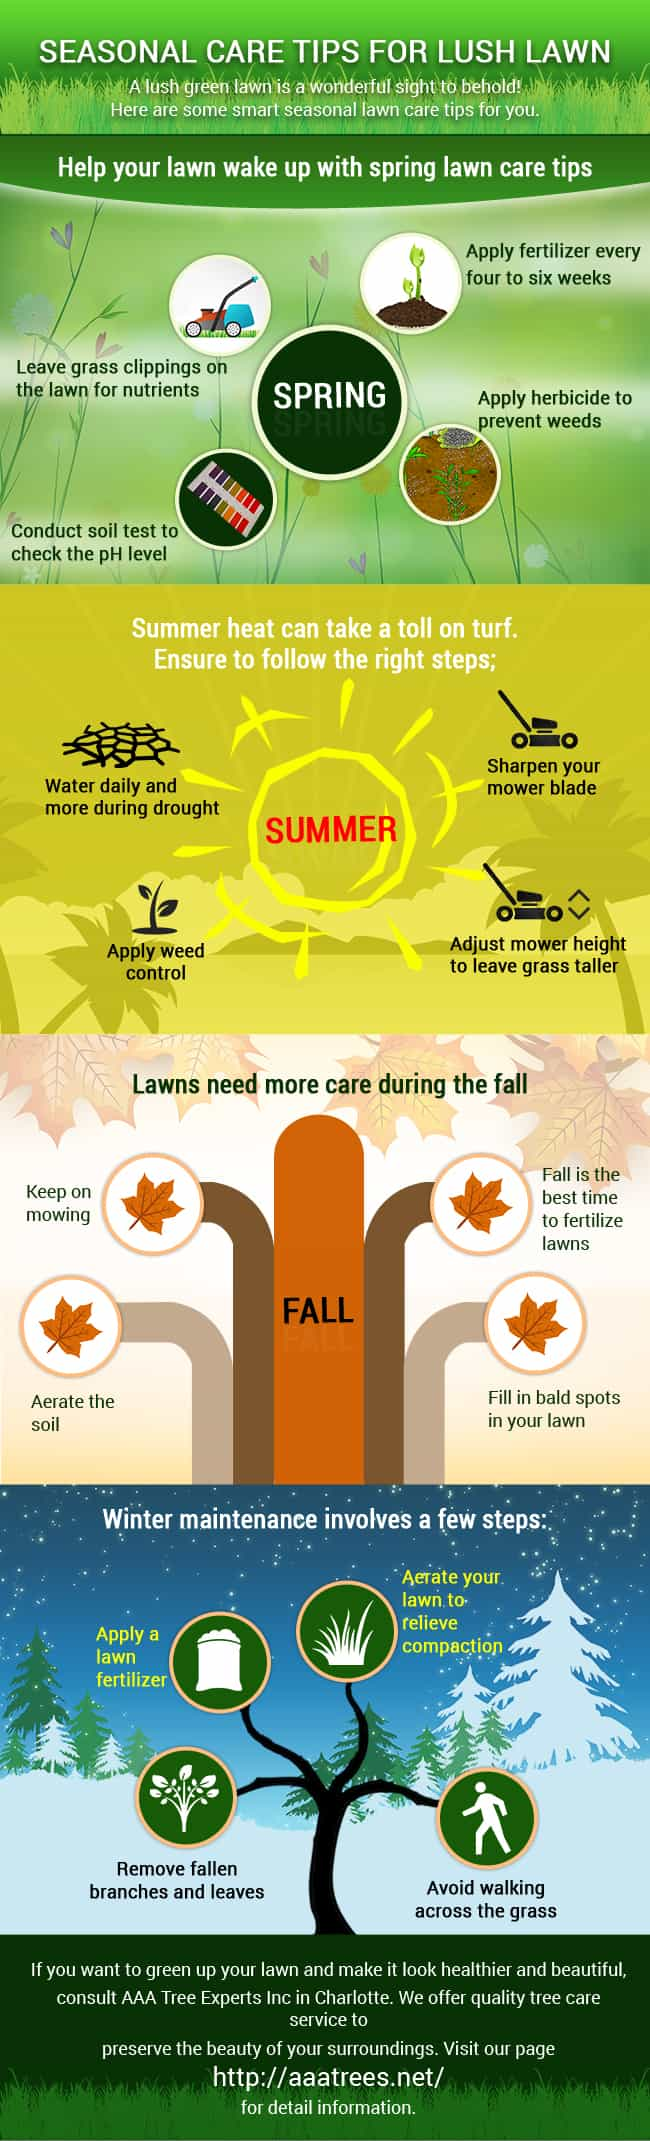 Lush lawn, season lawn care tips infographics